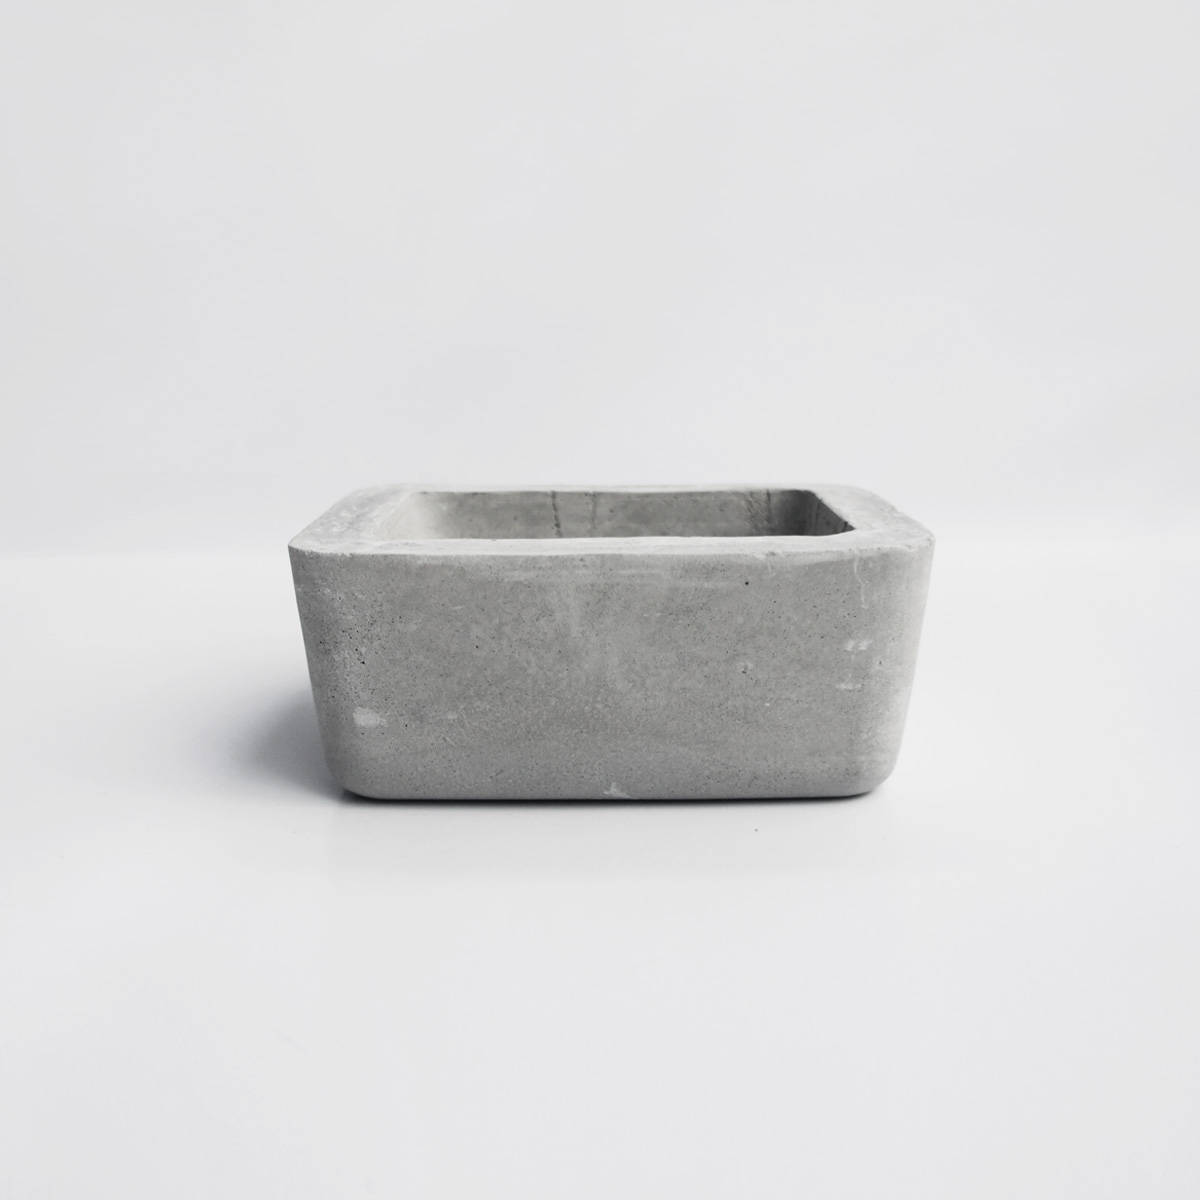 Concrete Design 水泥設計家飾・盆器・盆栽